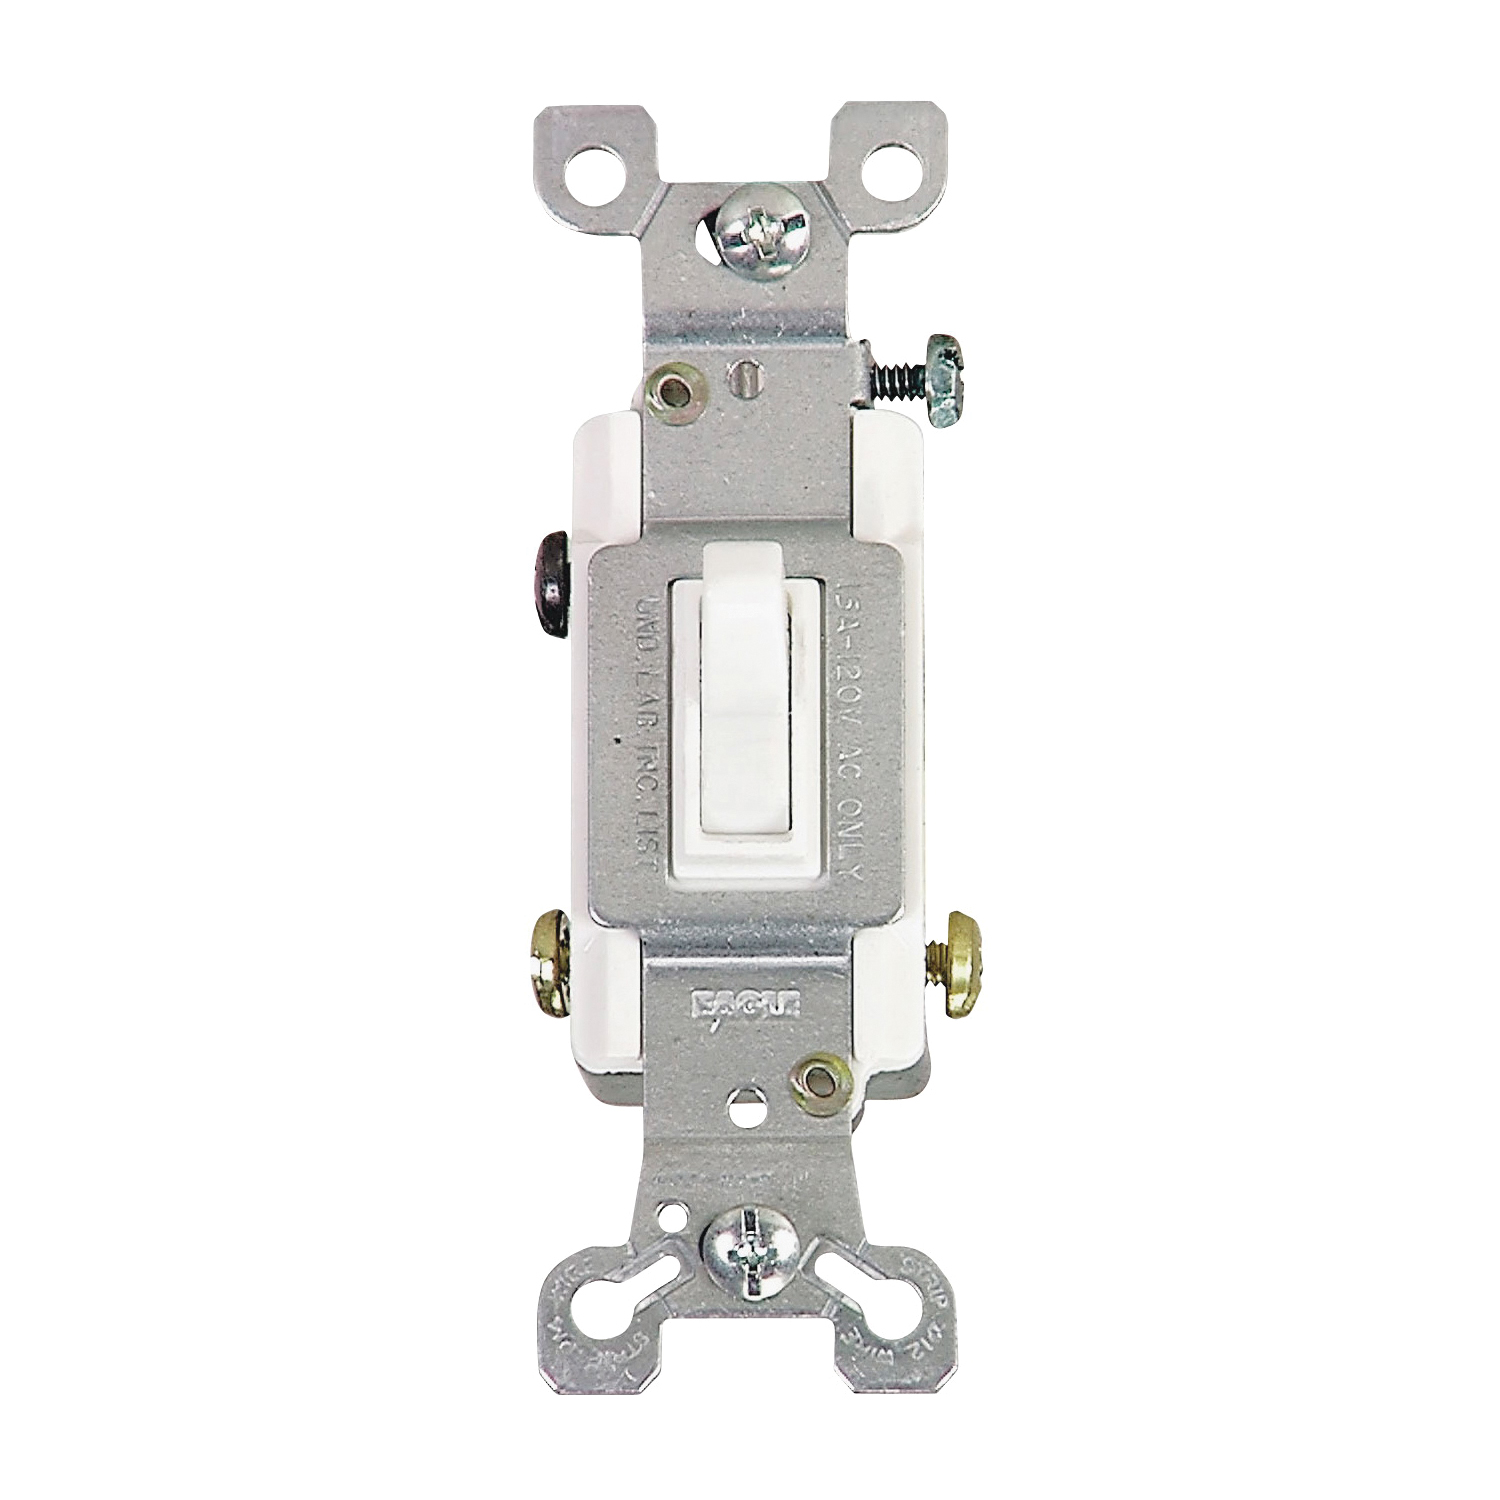 Picture of Eaton Wiring Devices 1303-7W-BOX Toggle Switch, 15 A, 120 V, Polycarbonate Housing Material, White